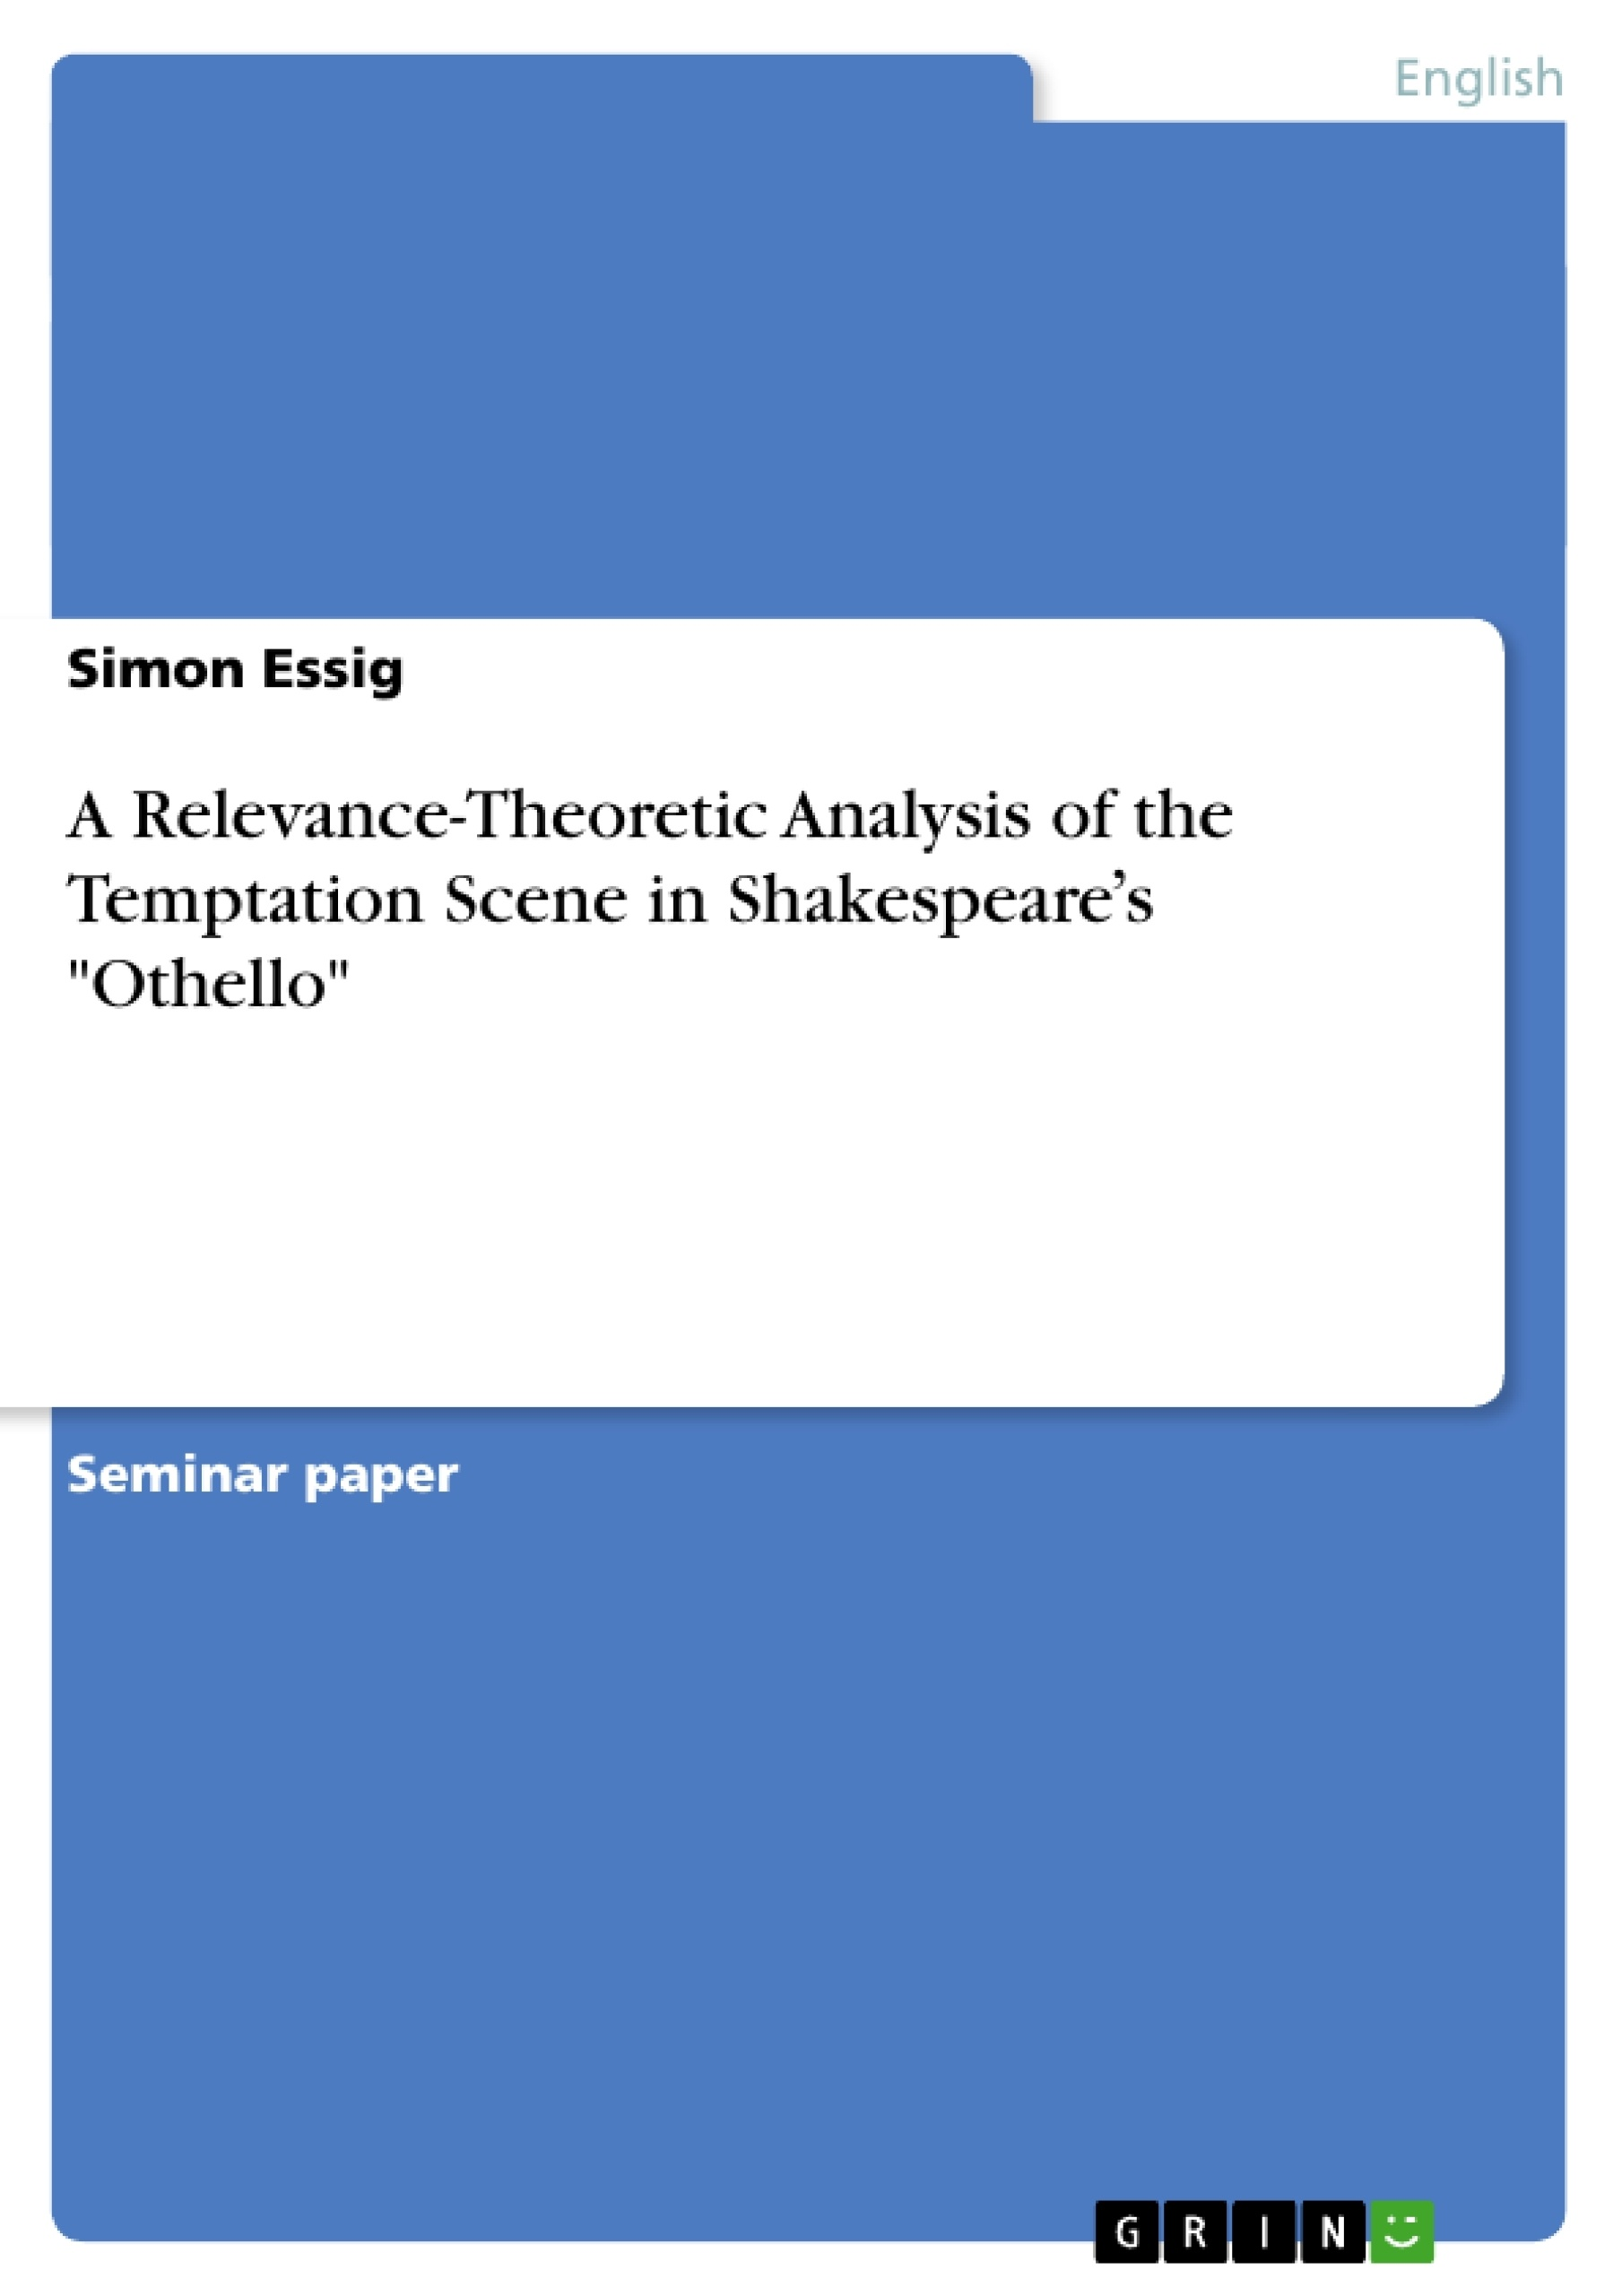 """Title: A Relevance-Theoretic Analysis of the Temptation Scene in Shakespeare's """"Othello"""""""